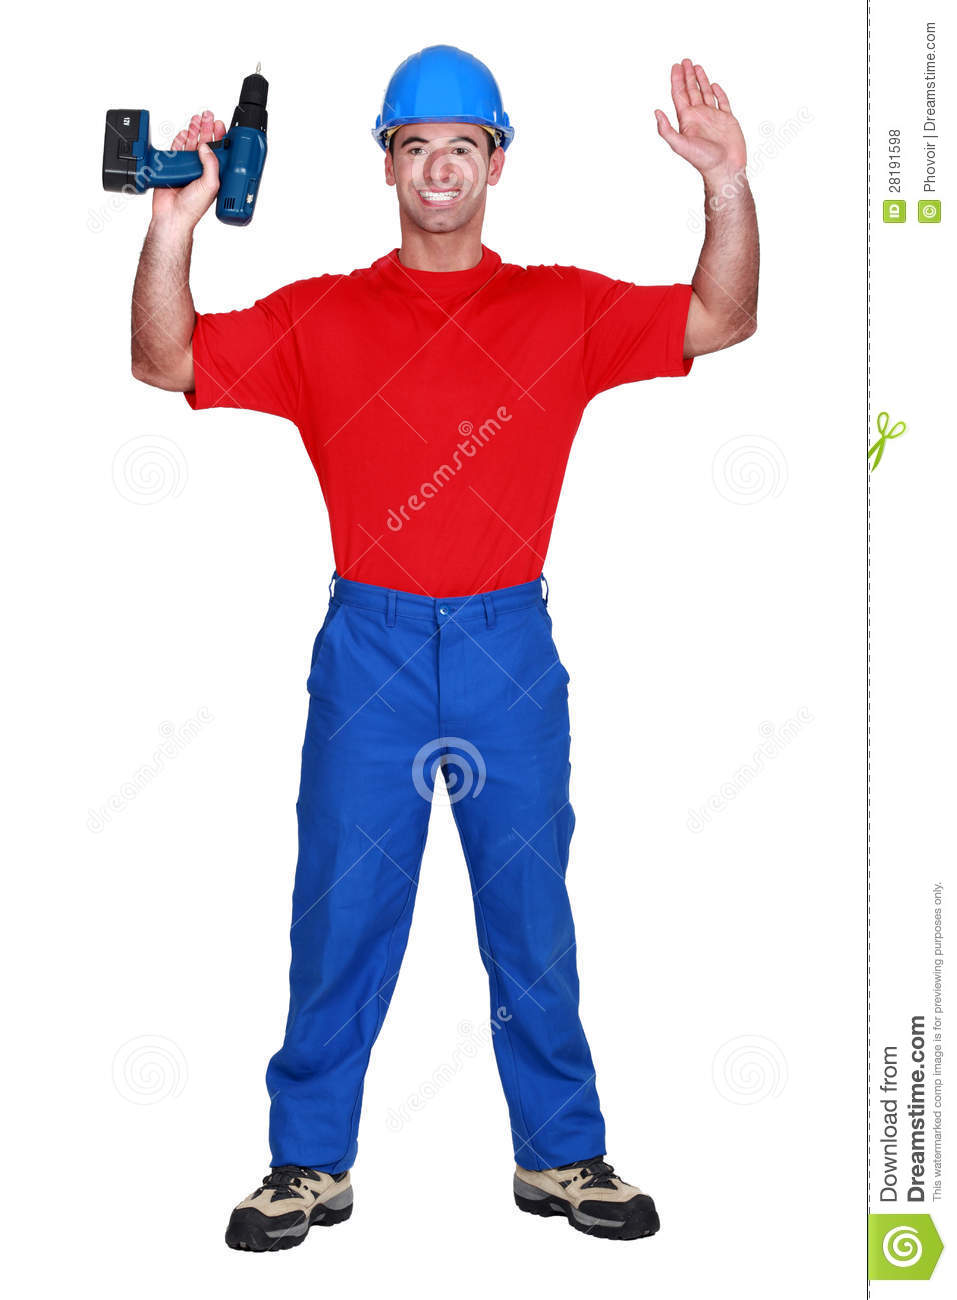 Man With Raised Arms Royalty Free Stock Photos - Image: 28191598